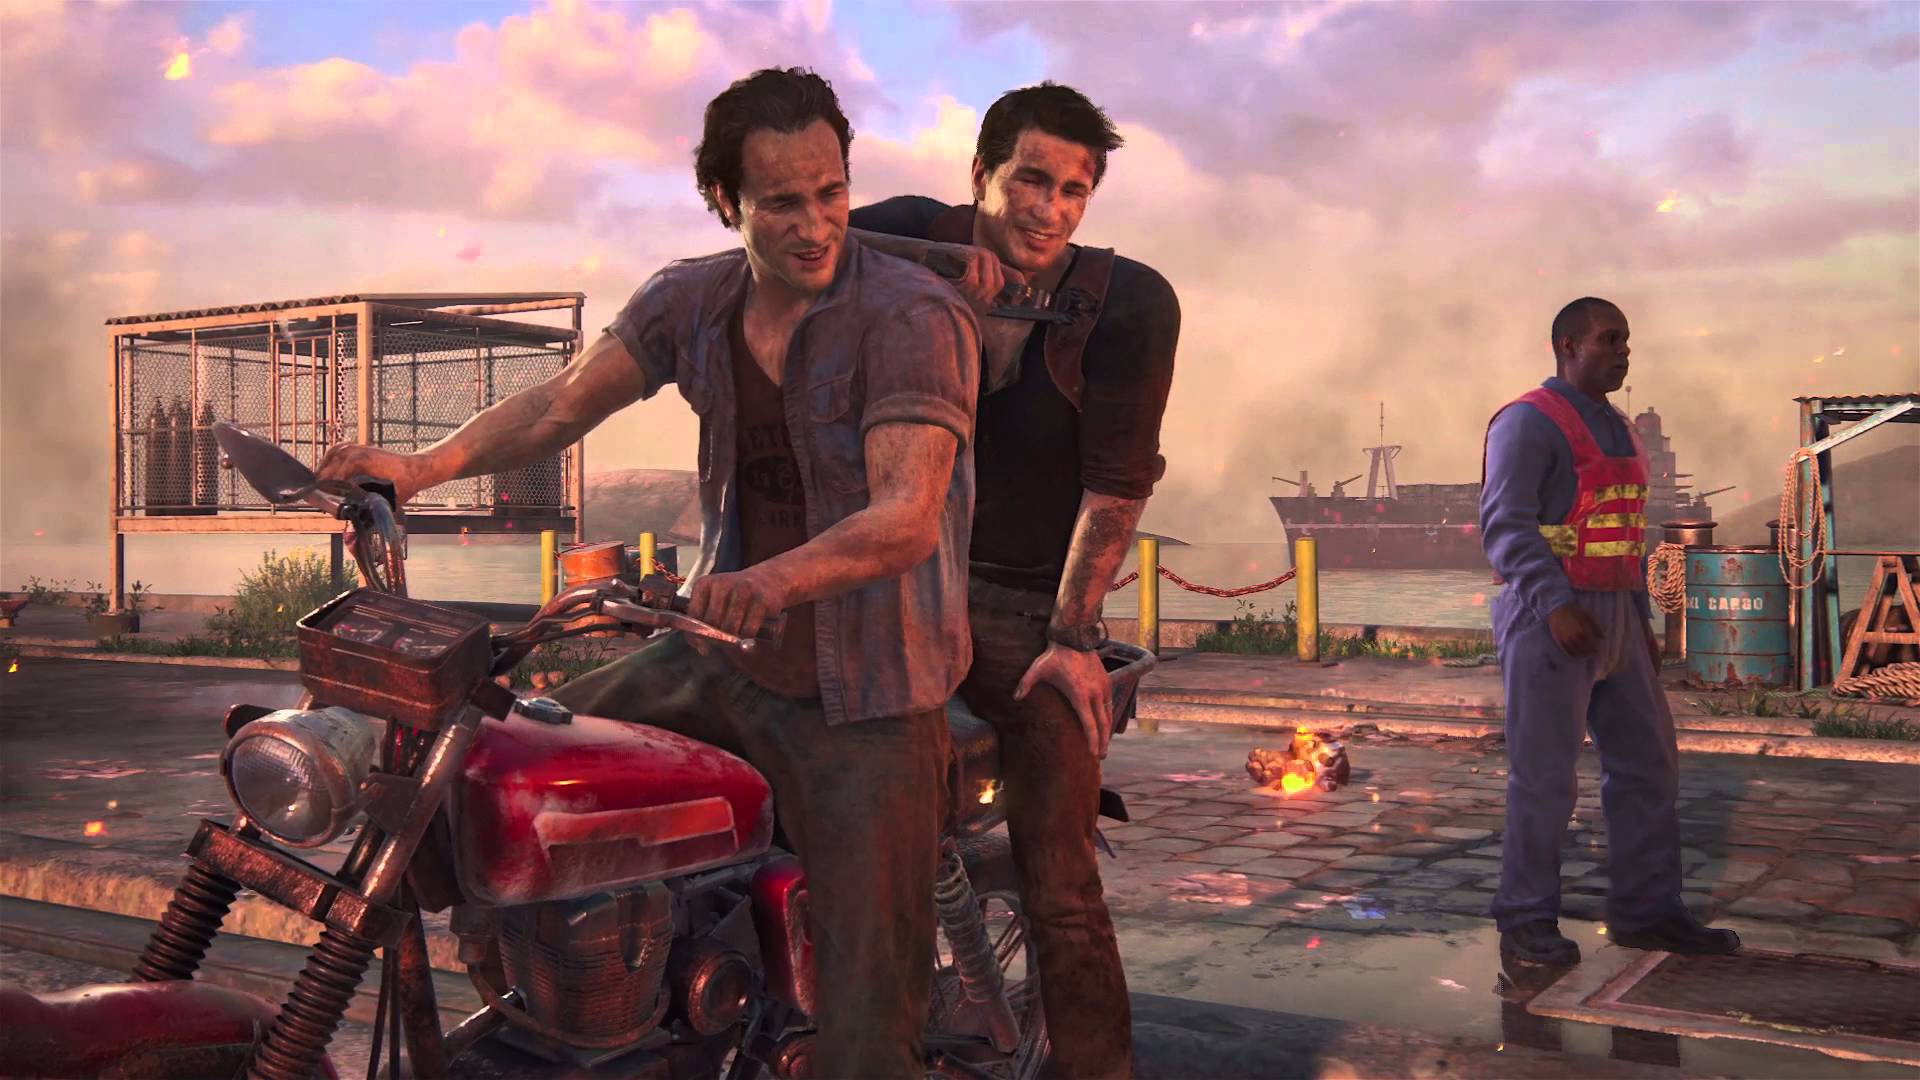 Uncharted 4: A Thief's End Review: The Last Crusade | et ...